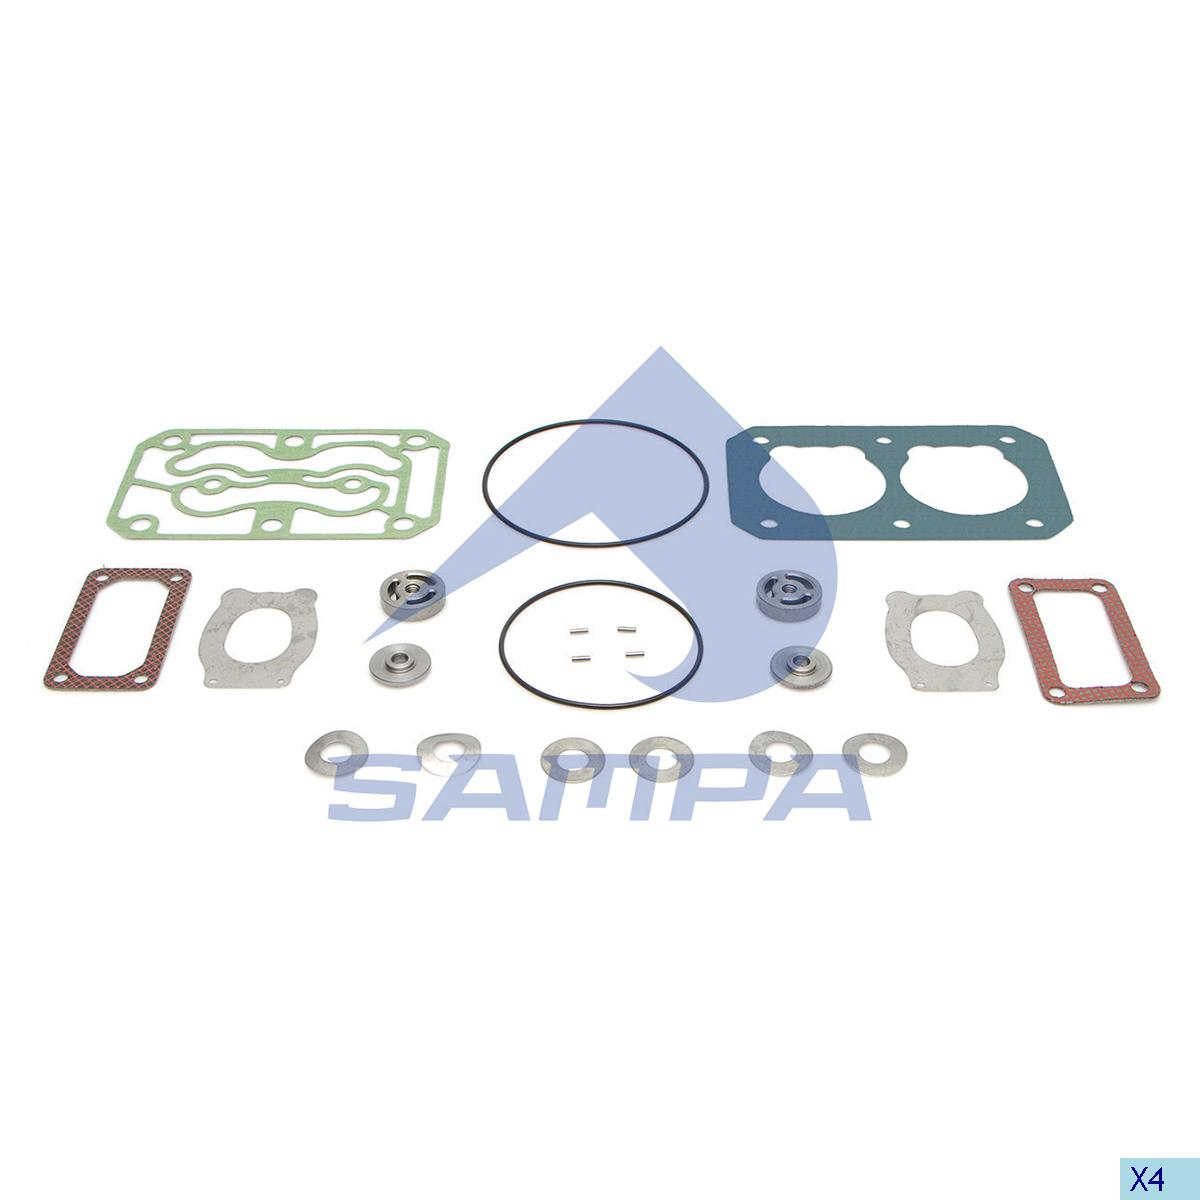 Repair Kit, Compressor, Daf, Compressed Air System